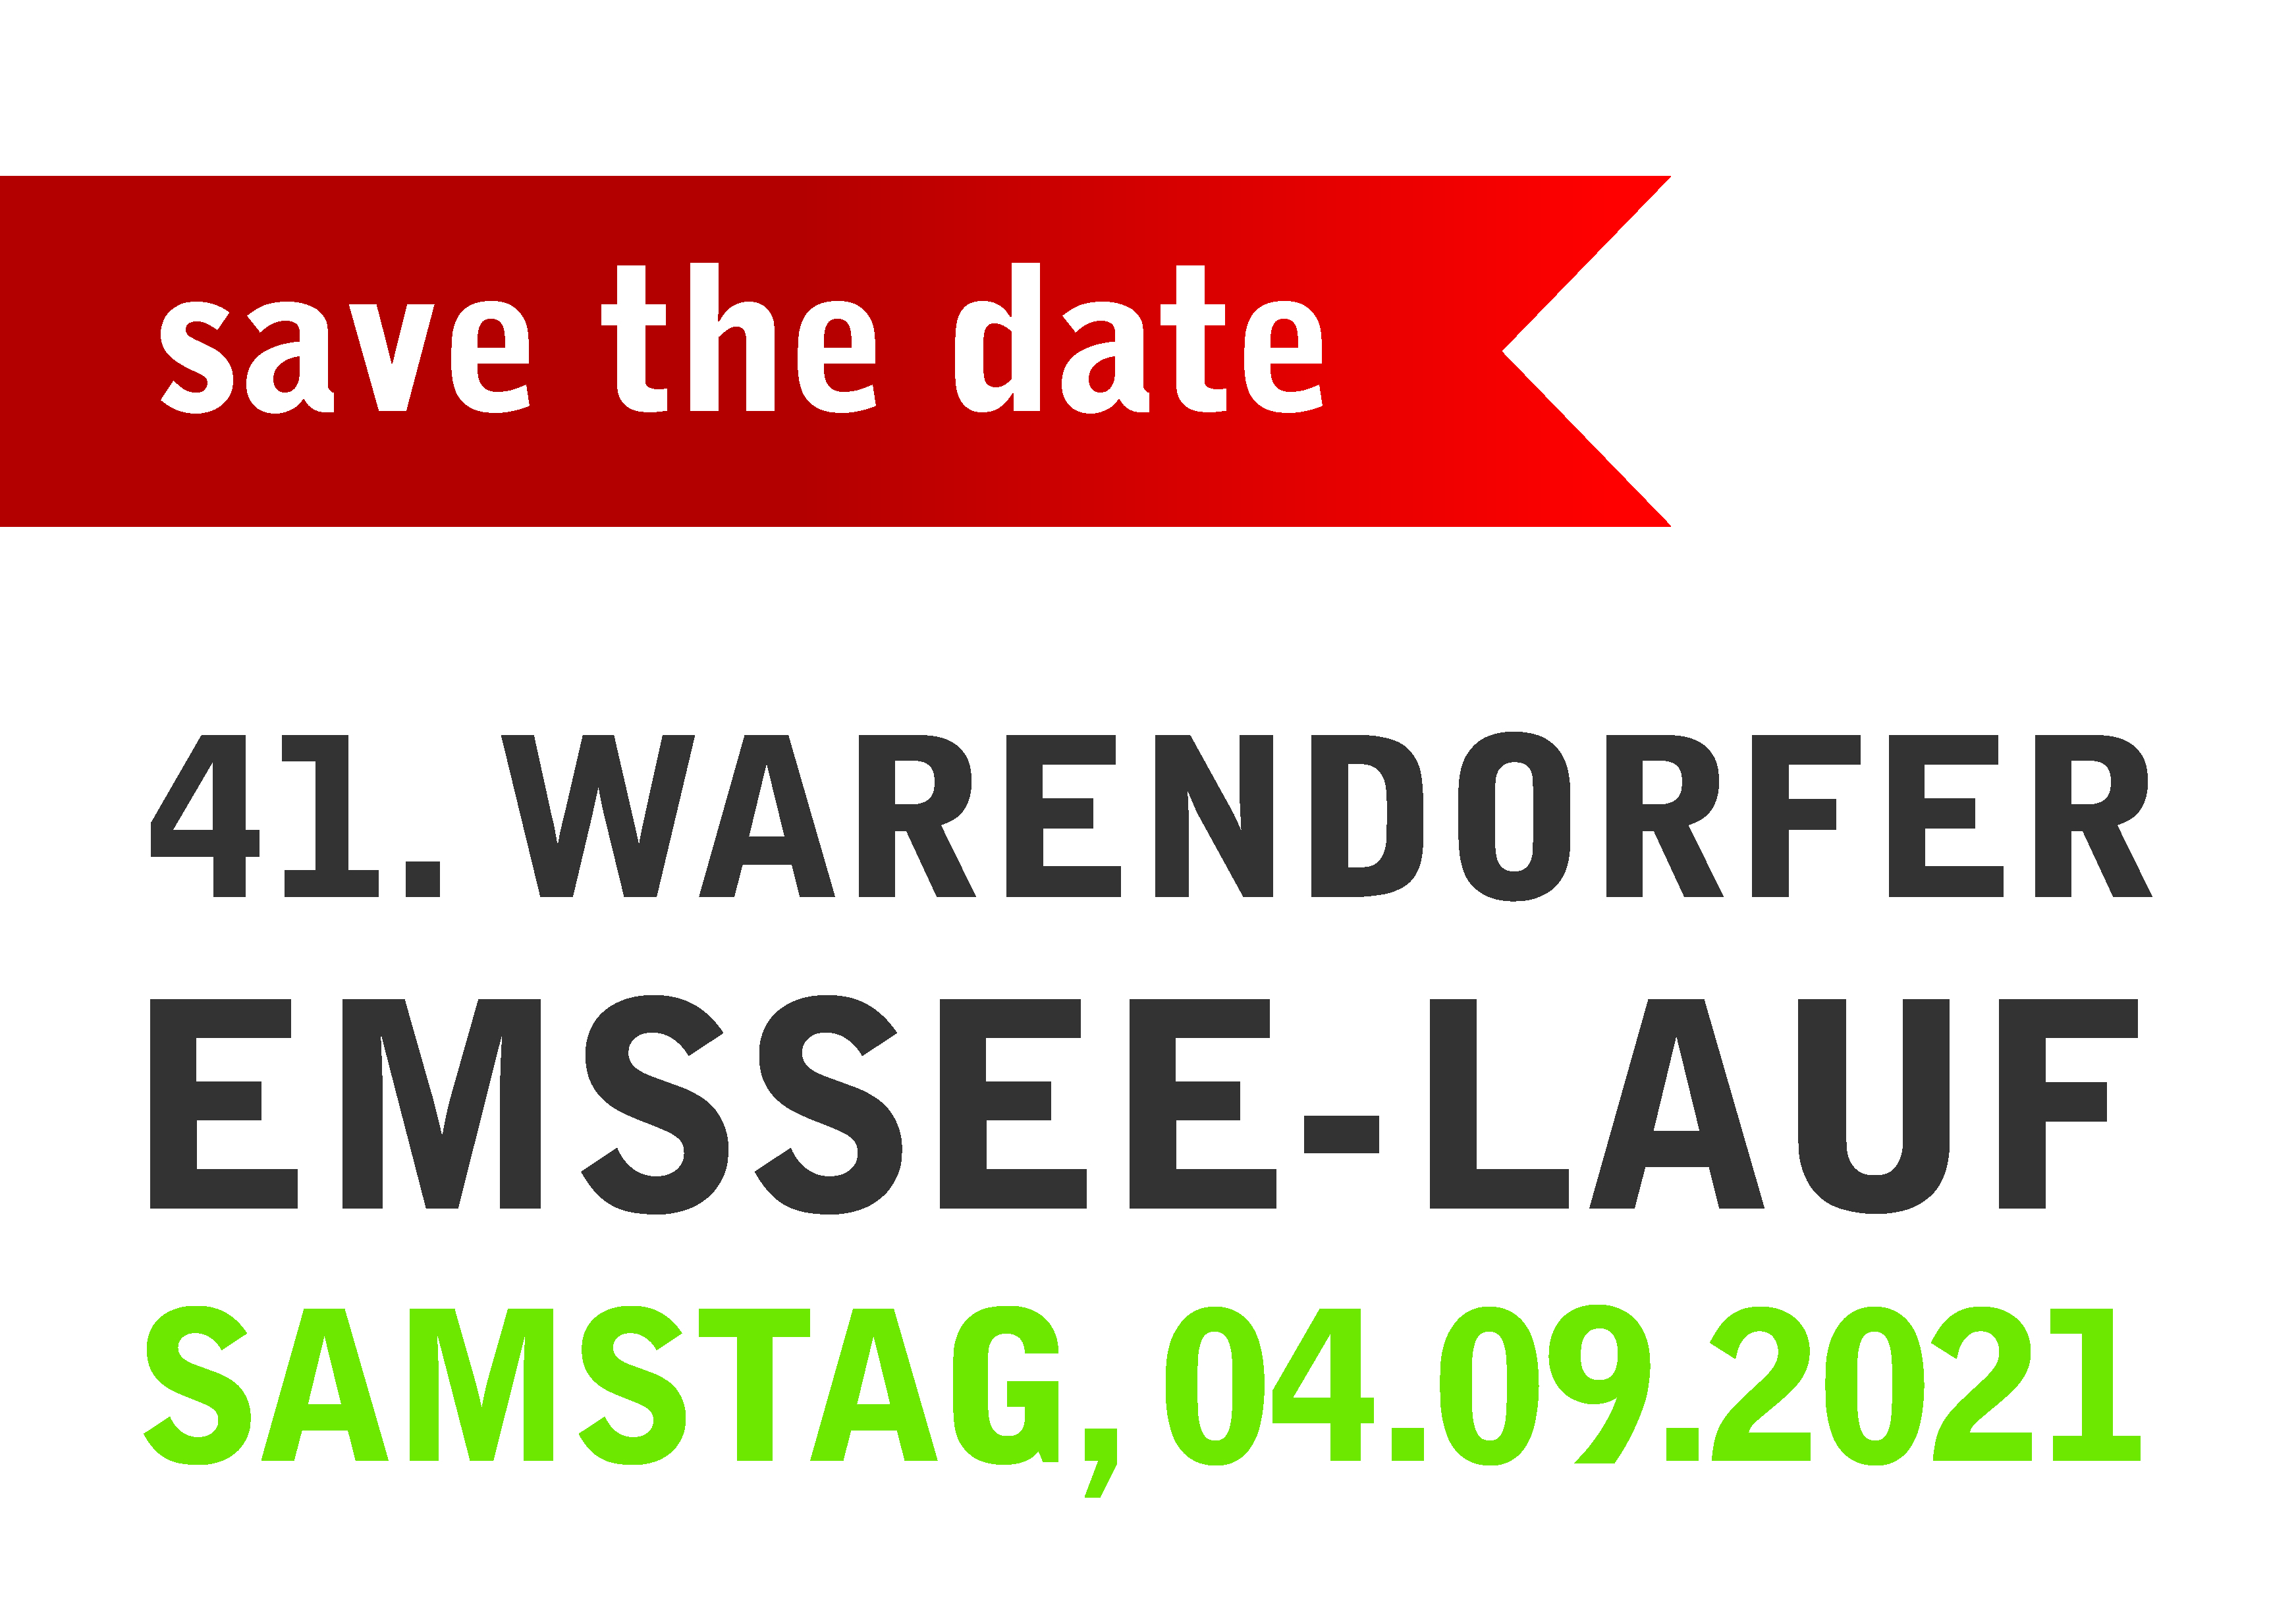 WSU LA Emssee Lauf 2021 Save the date